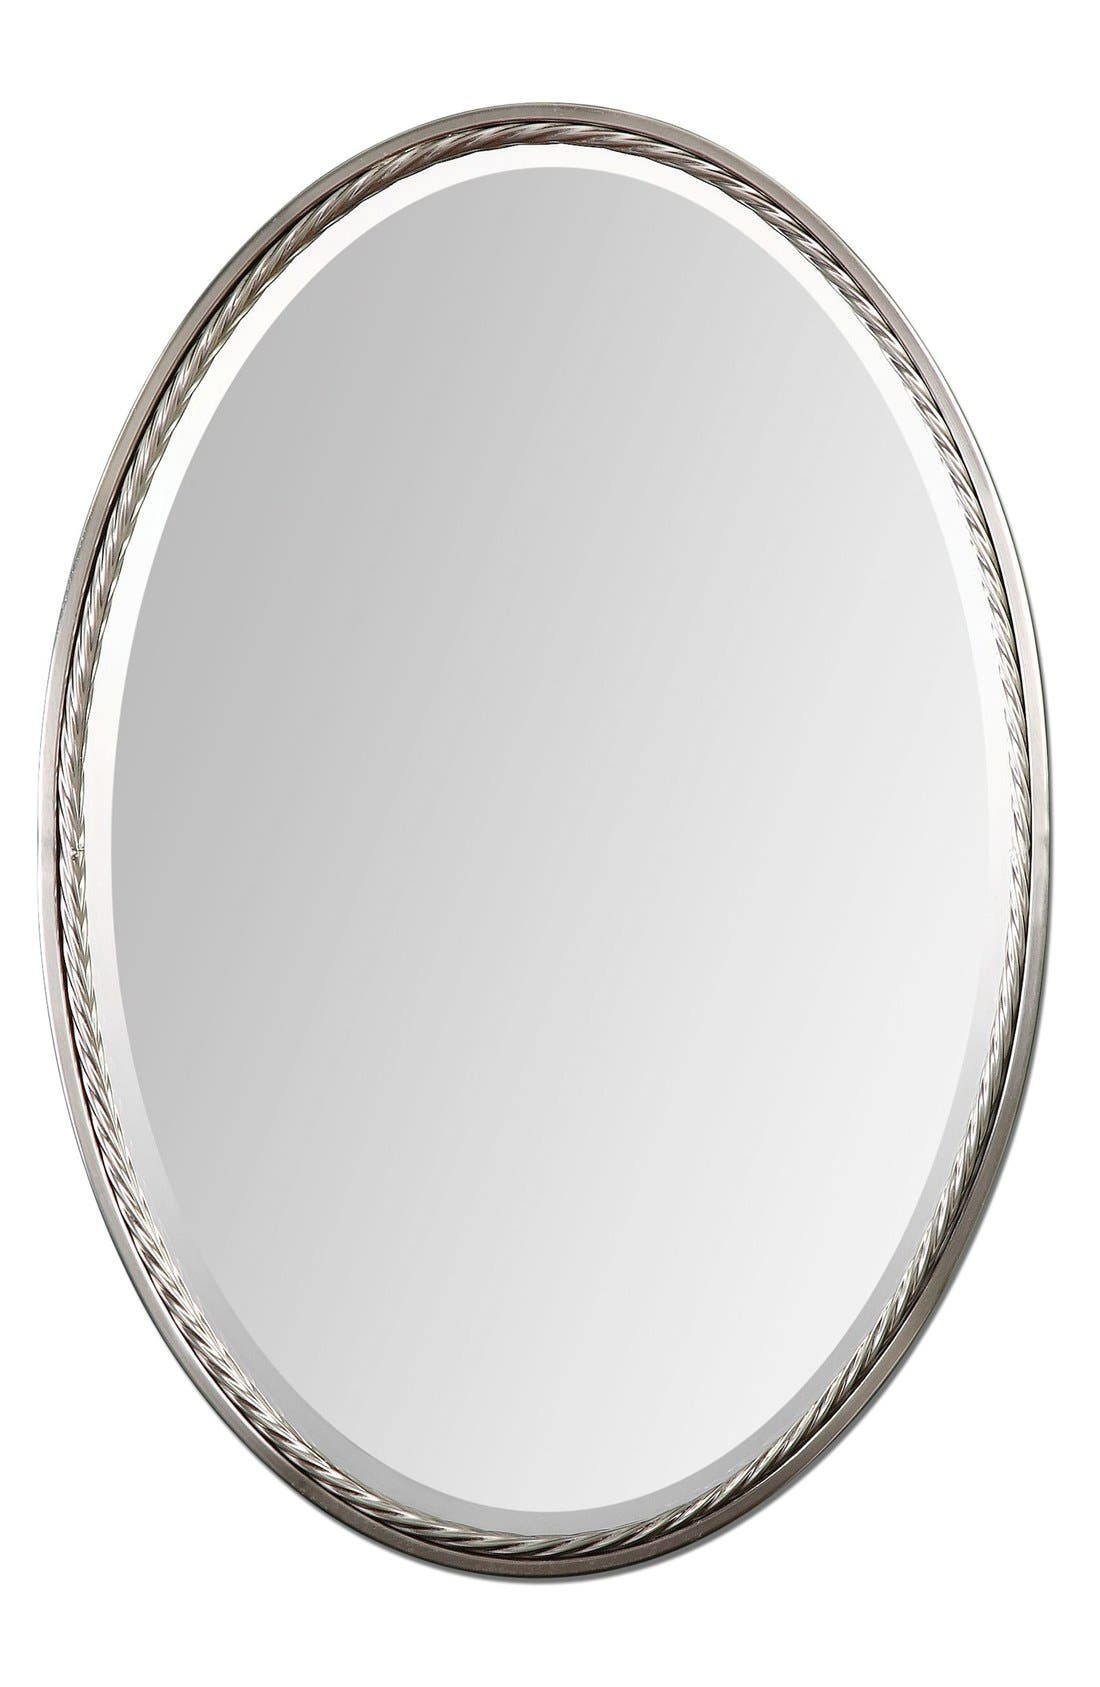 'Casalina' Oval Mirror,                         Main,                         color, Brushed Nickel